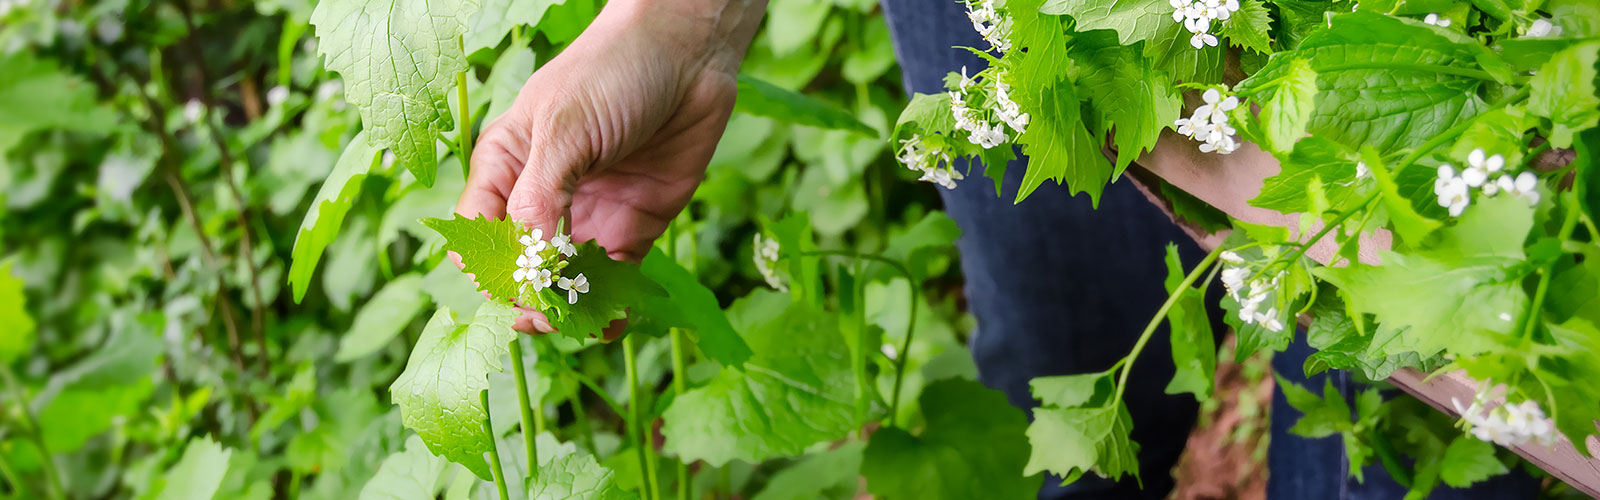 Wild Food: 3 Amazing Foraged Food Recipies To Try This Summer